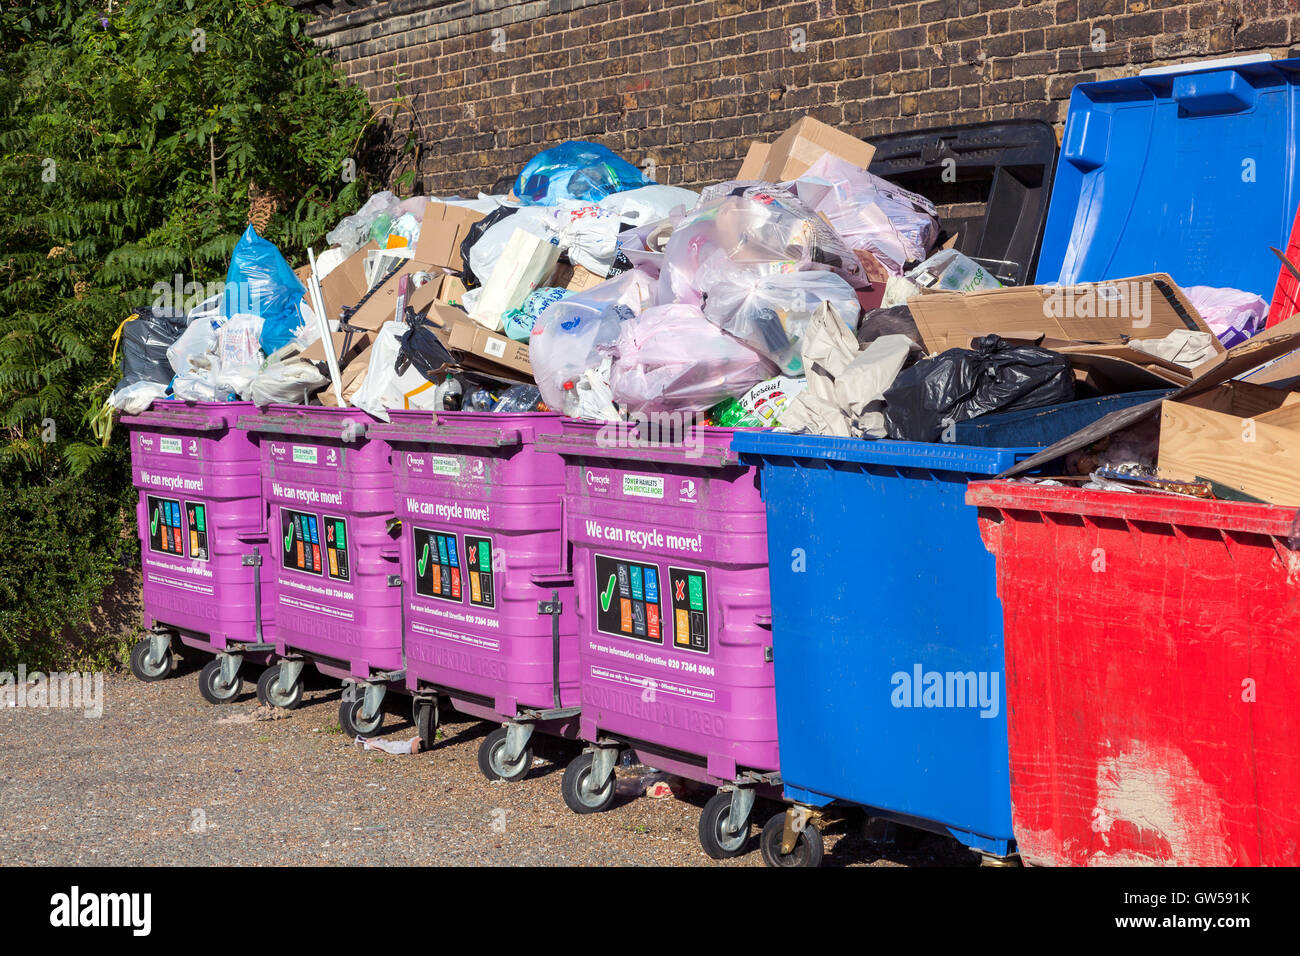 Overflowing mixed recycling bins in Limehouse, Tower Hamlets, London Stock Photo